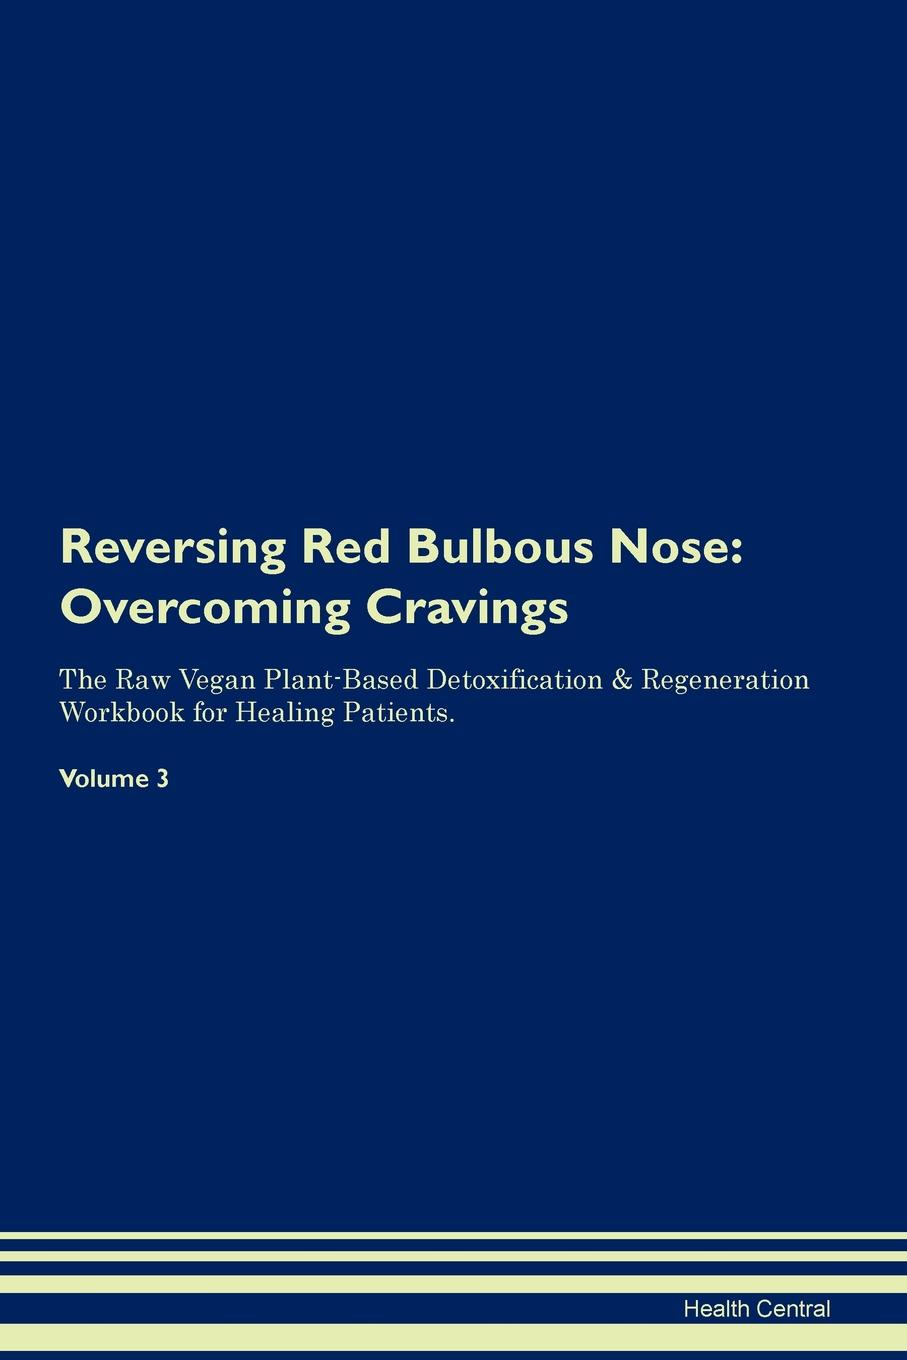 Health Central Reversing Red Bulbous Nose. Overcoming Cravings The Raw Vegan Plant-Based Detoxification . Regeneration Workbook for Healing Patients. Volume 3